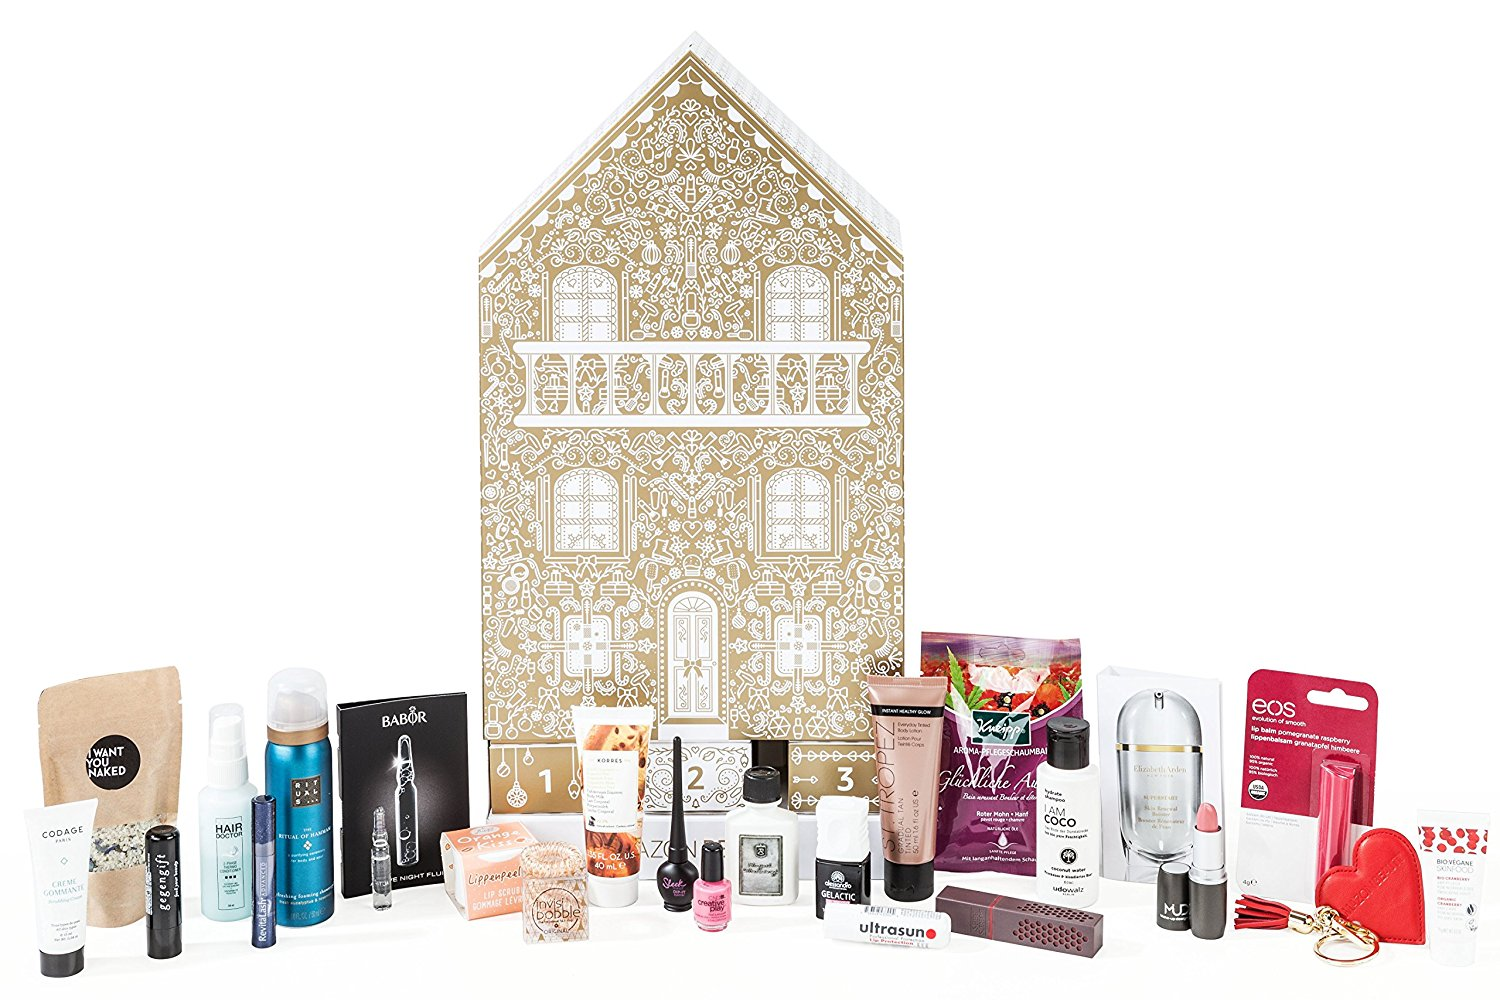 Adventskalender Rituals 2018 The Best Beauty Advent Calendars For 2017 Seesaw